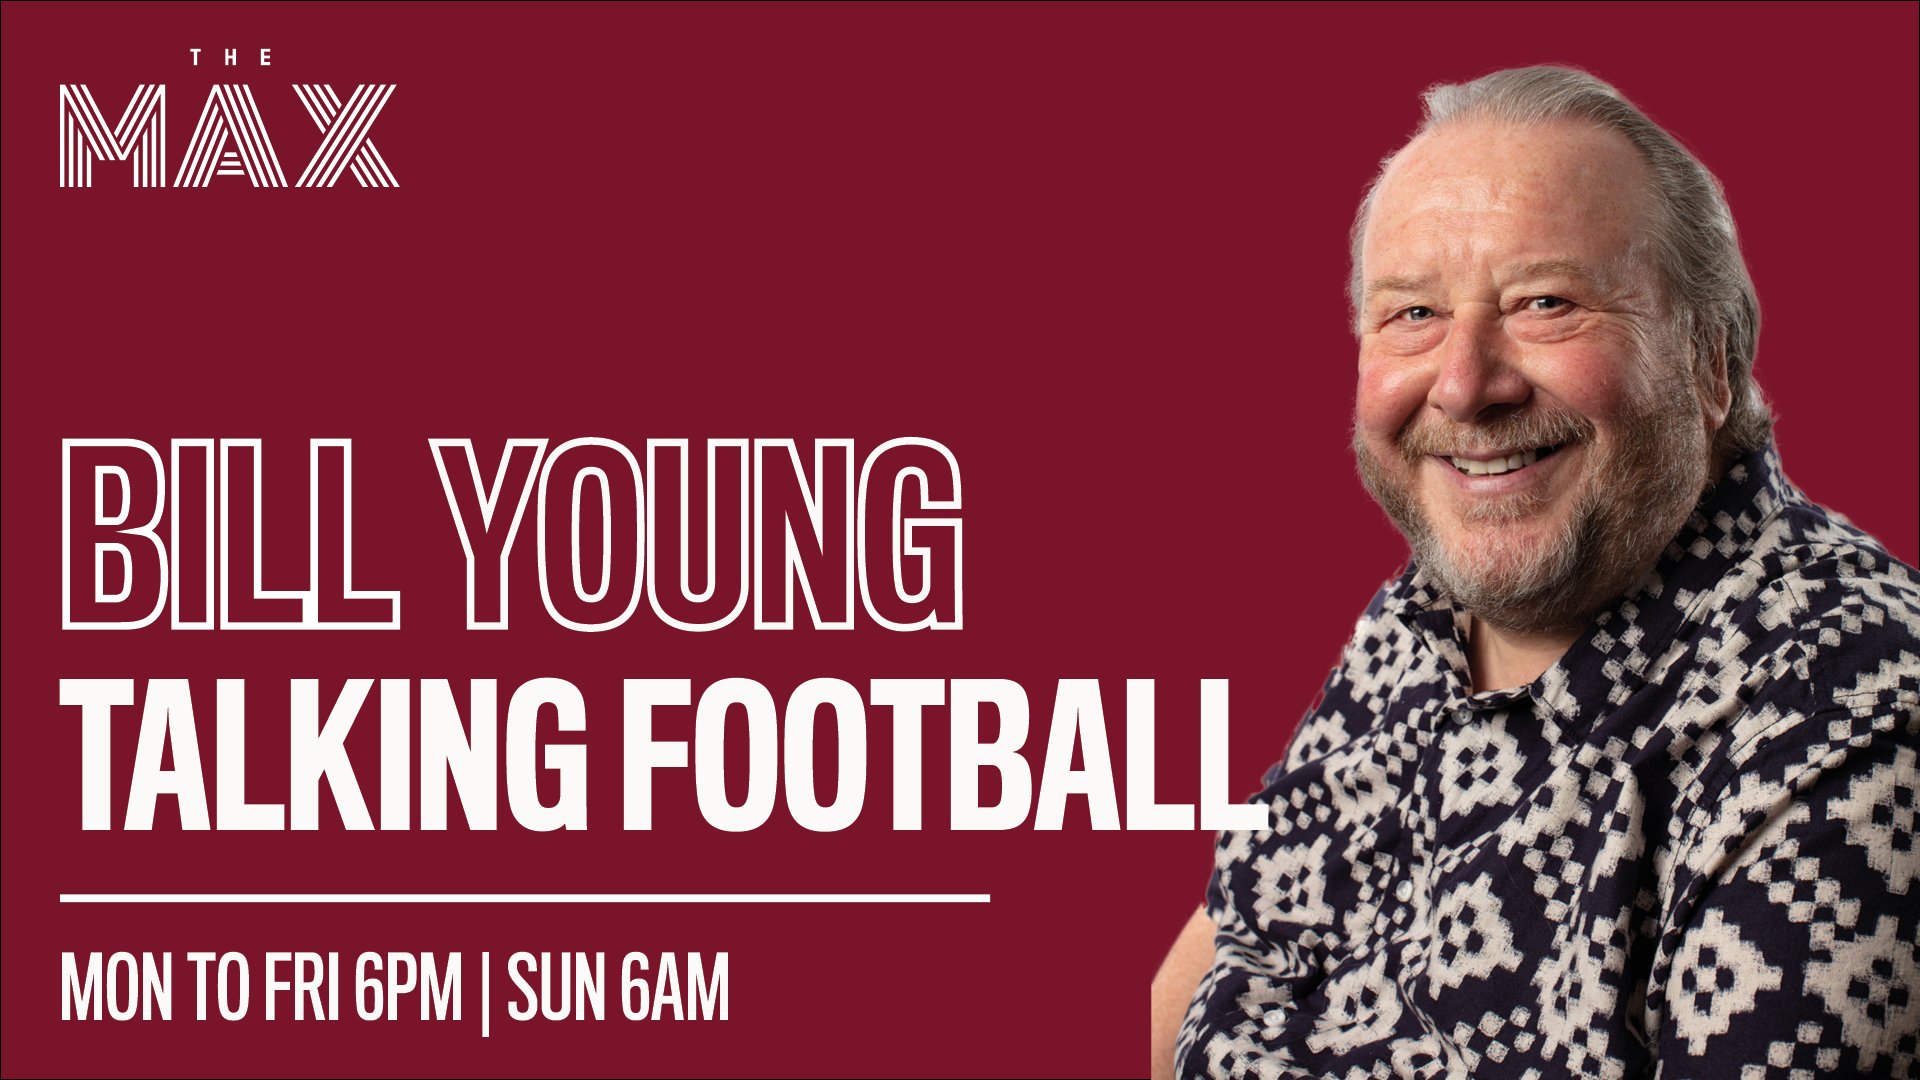 Talking Football with Bill Young - Friday 18th of September - Episode 34